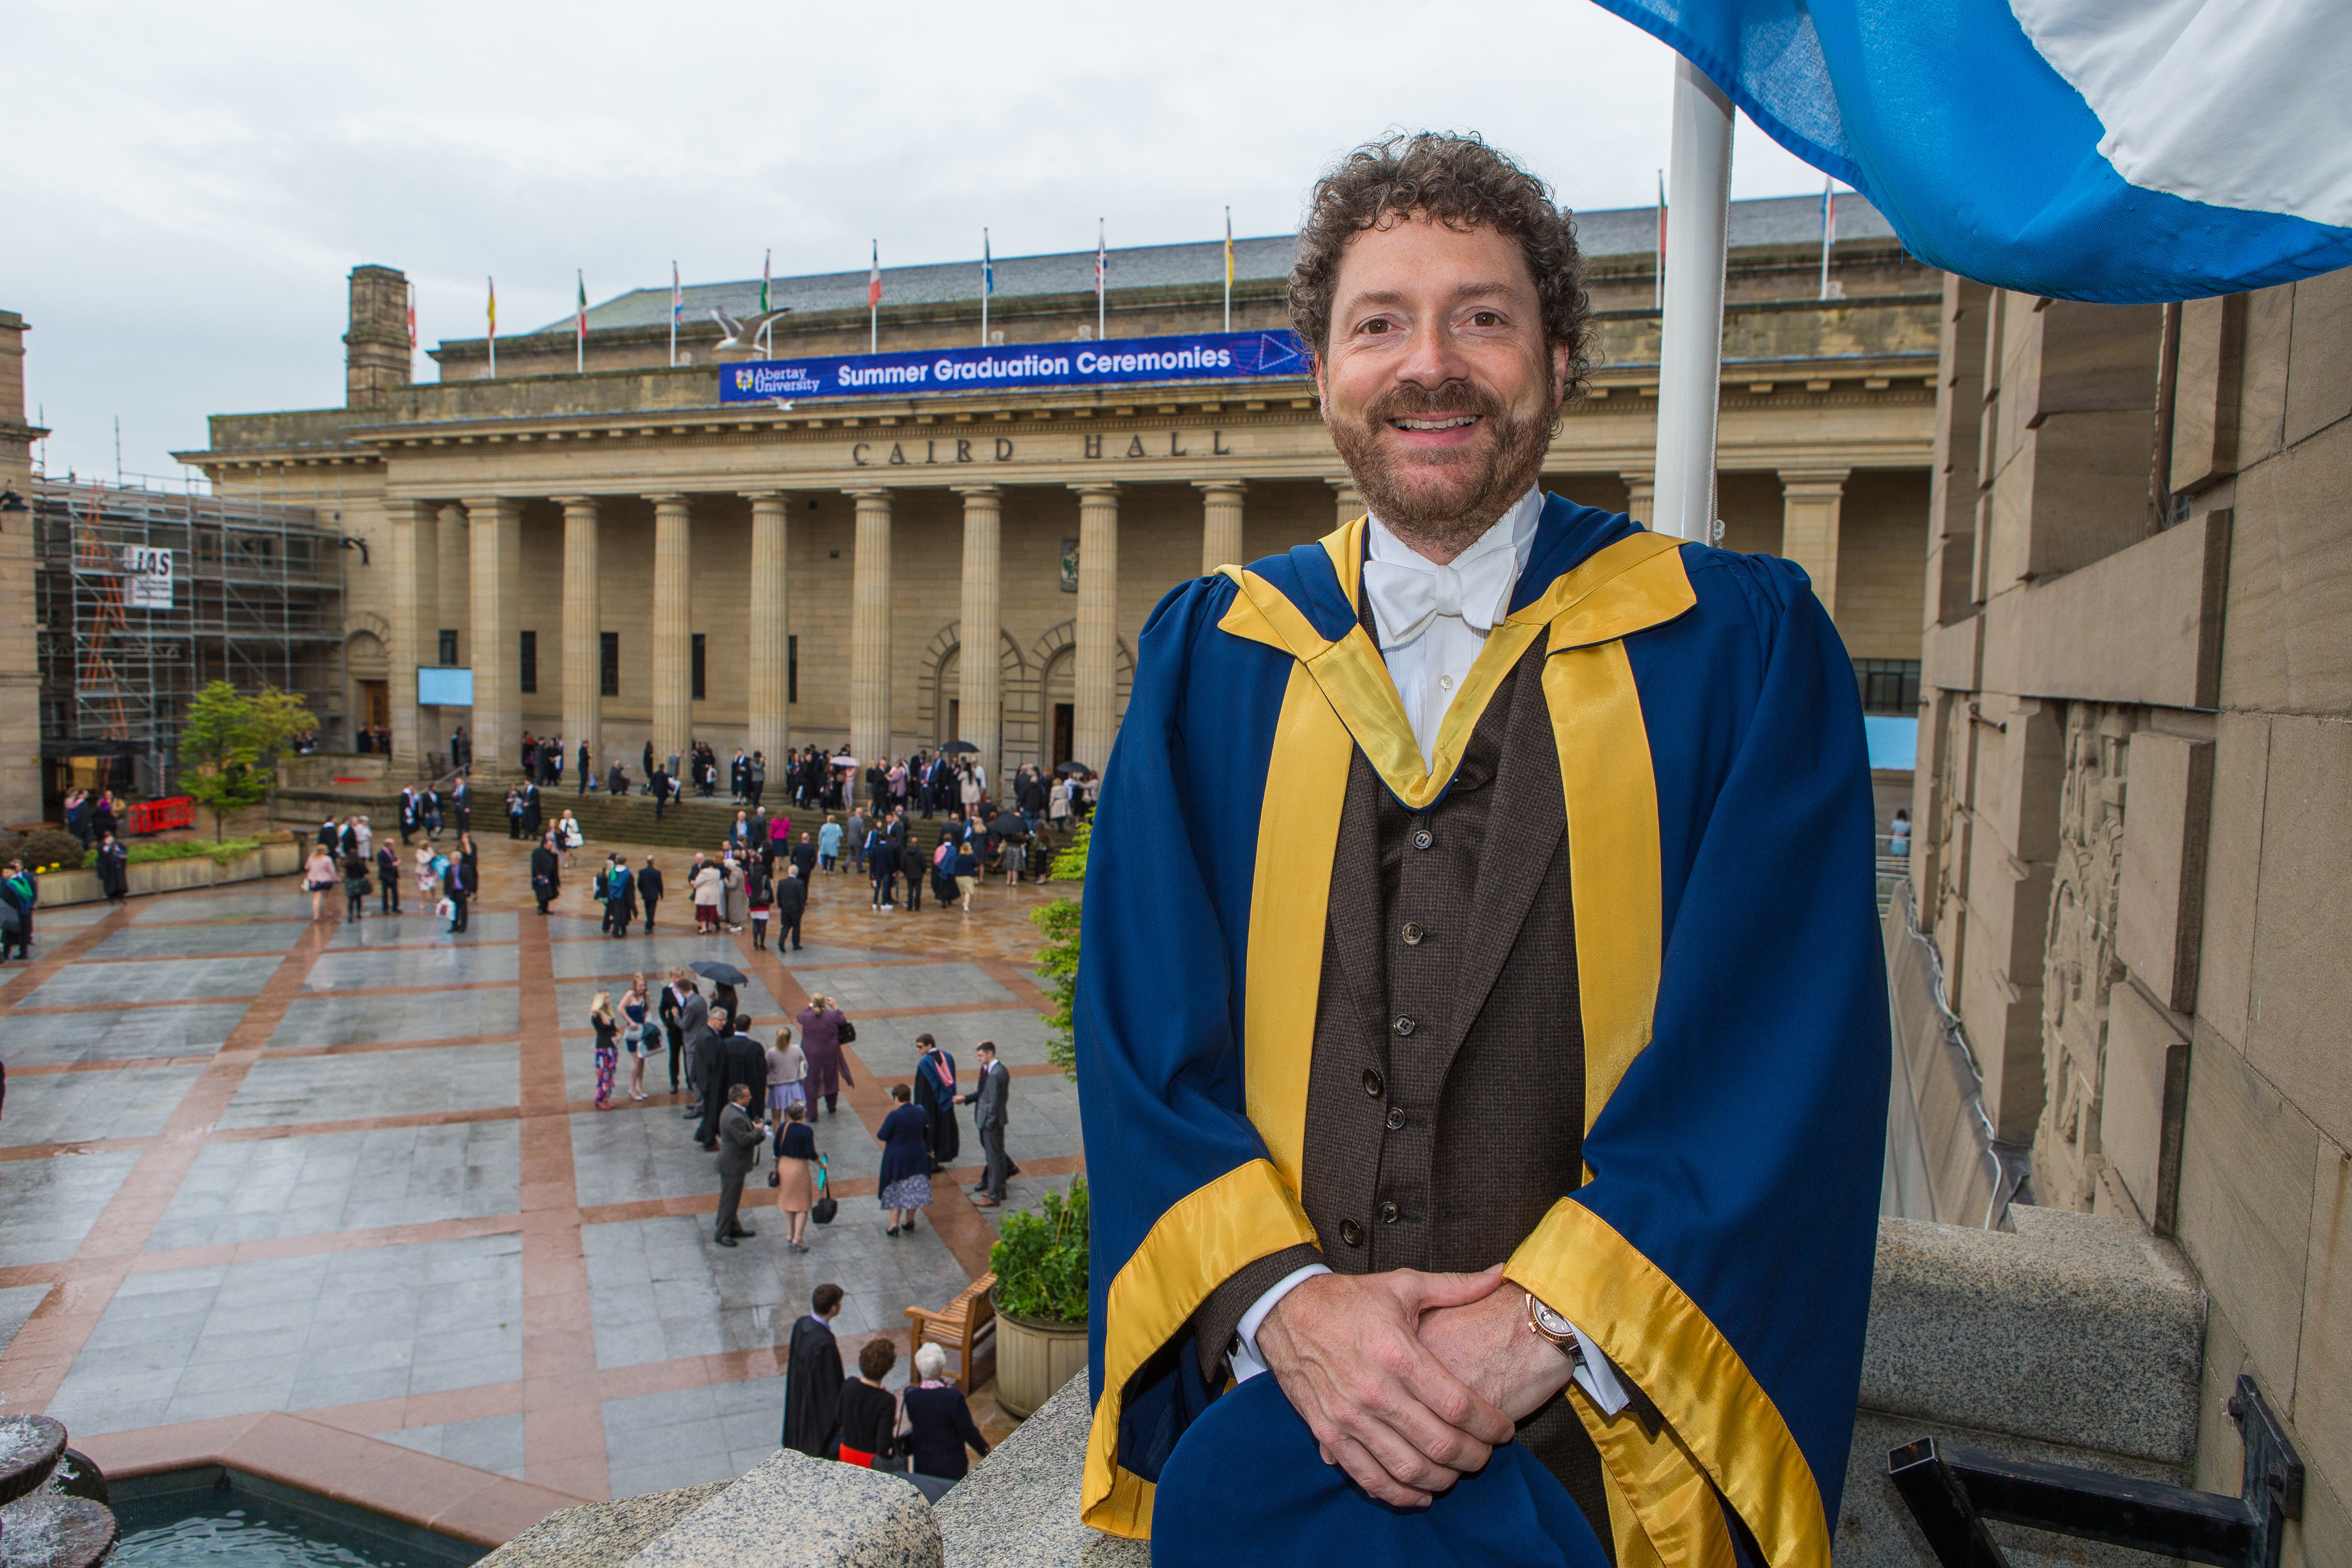 Dundonian Chris van der Kuyl received an Honorary Doctorate of Technology